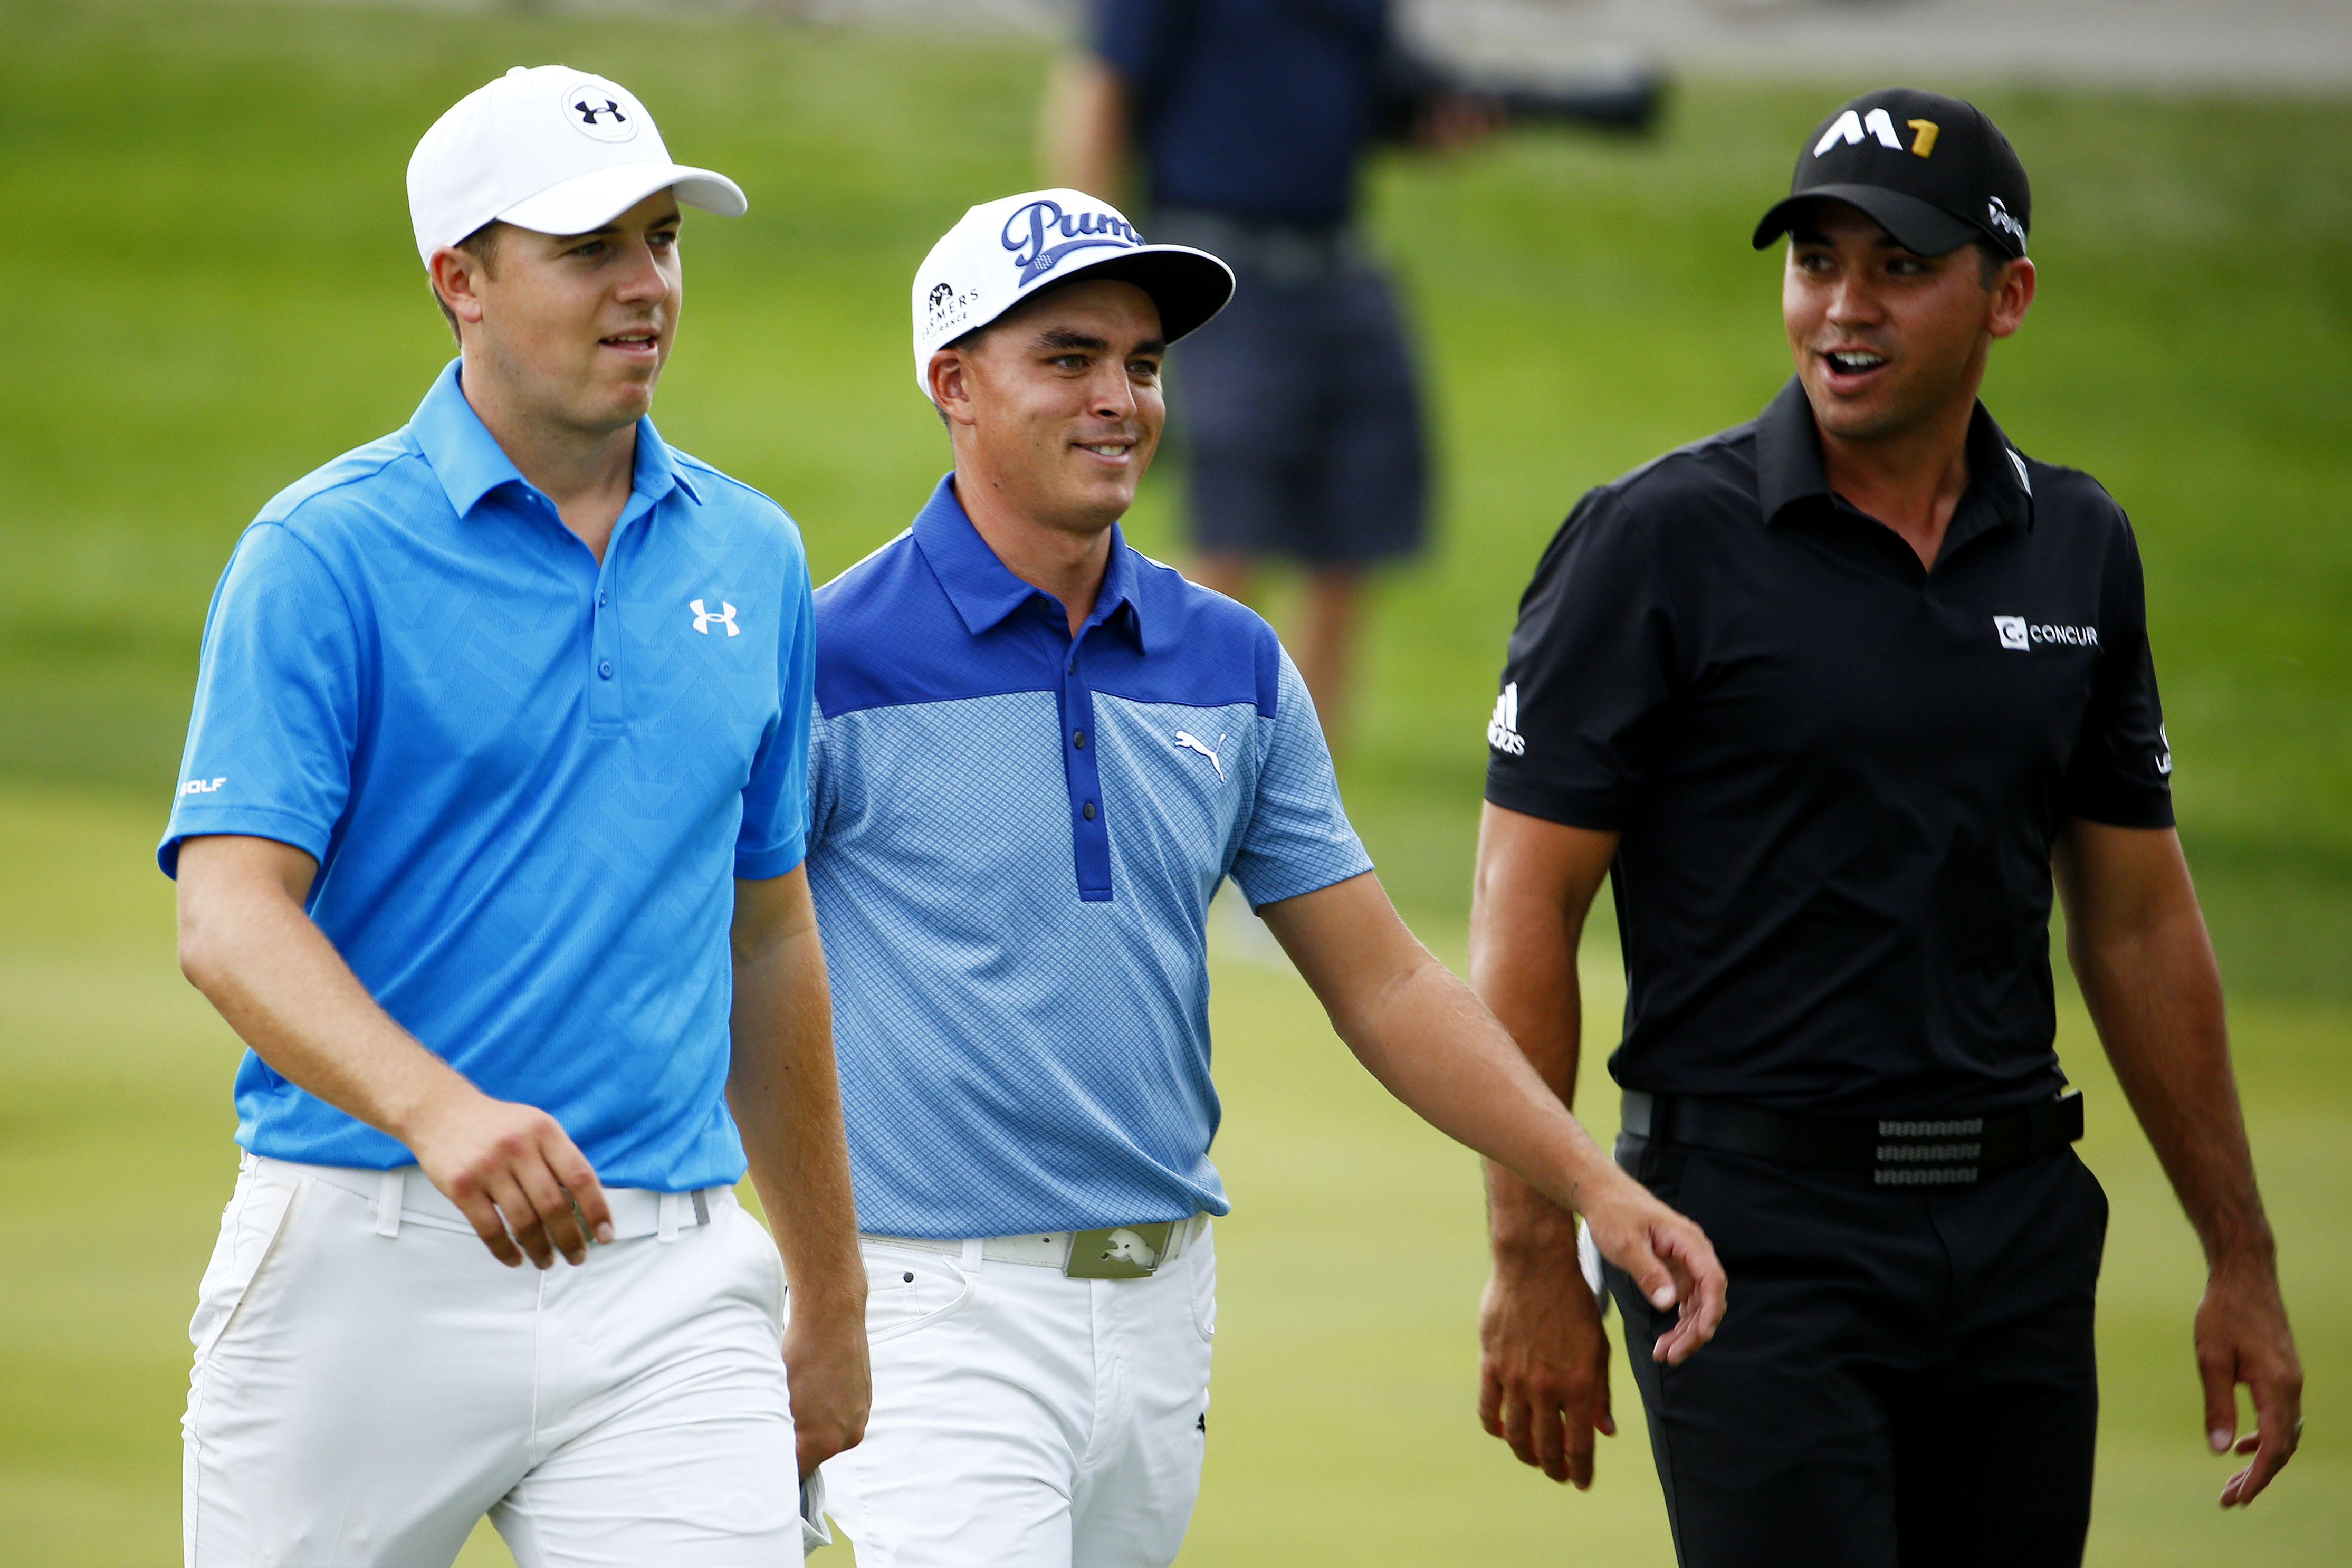 Spieth, Fowler and Day played together at Conway Farms (Photo: Getty Images)